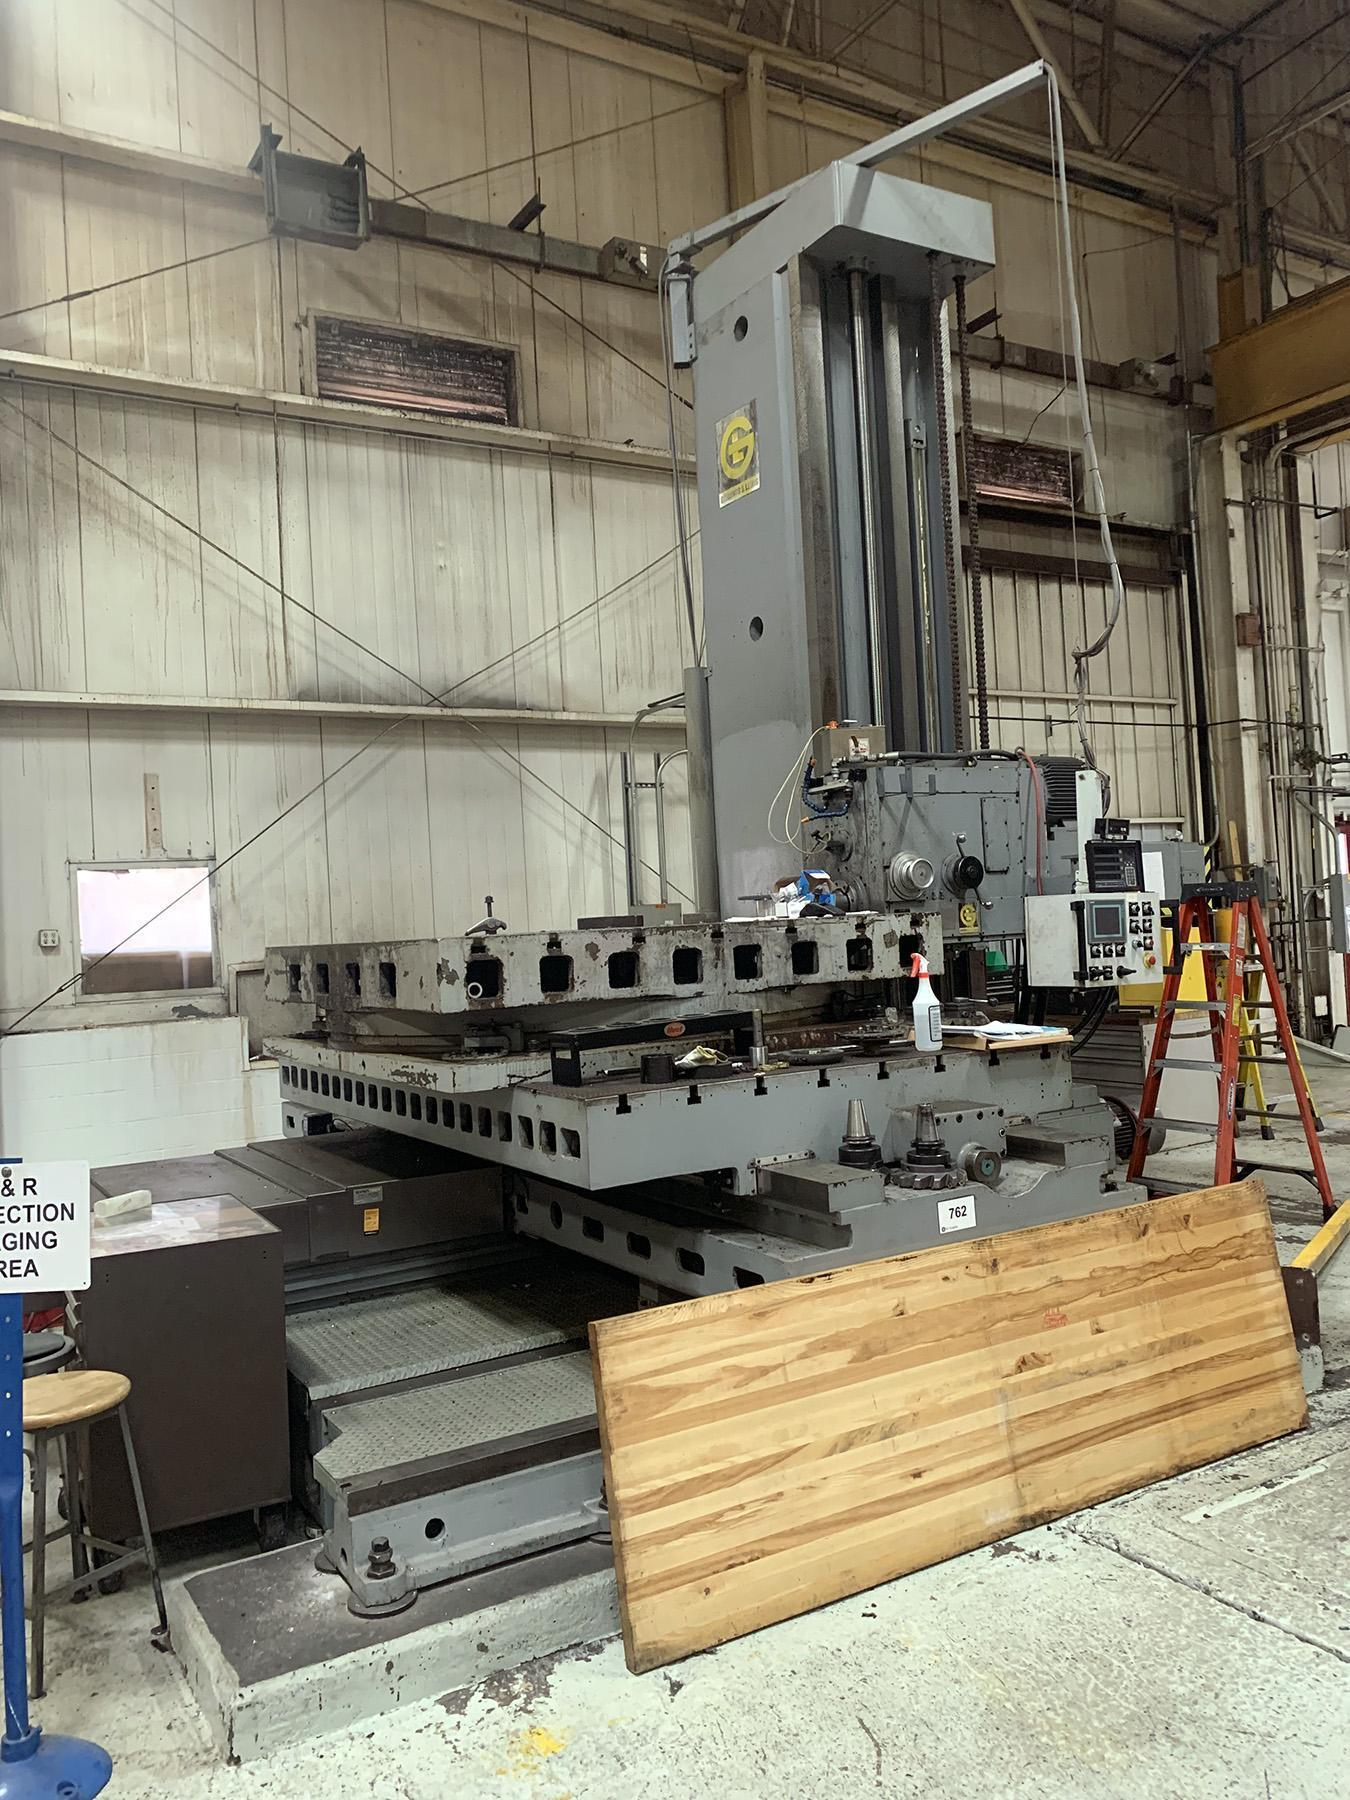 "USED, 6"" GIDDINGS & LEWIS MODEL 70-H6-T HORIZONTAL BORING MILL, REBUILT 2014 - LIKE NEW CONDITION."